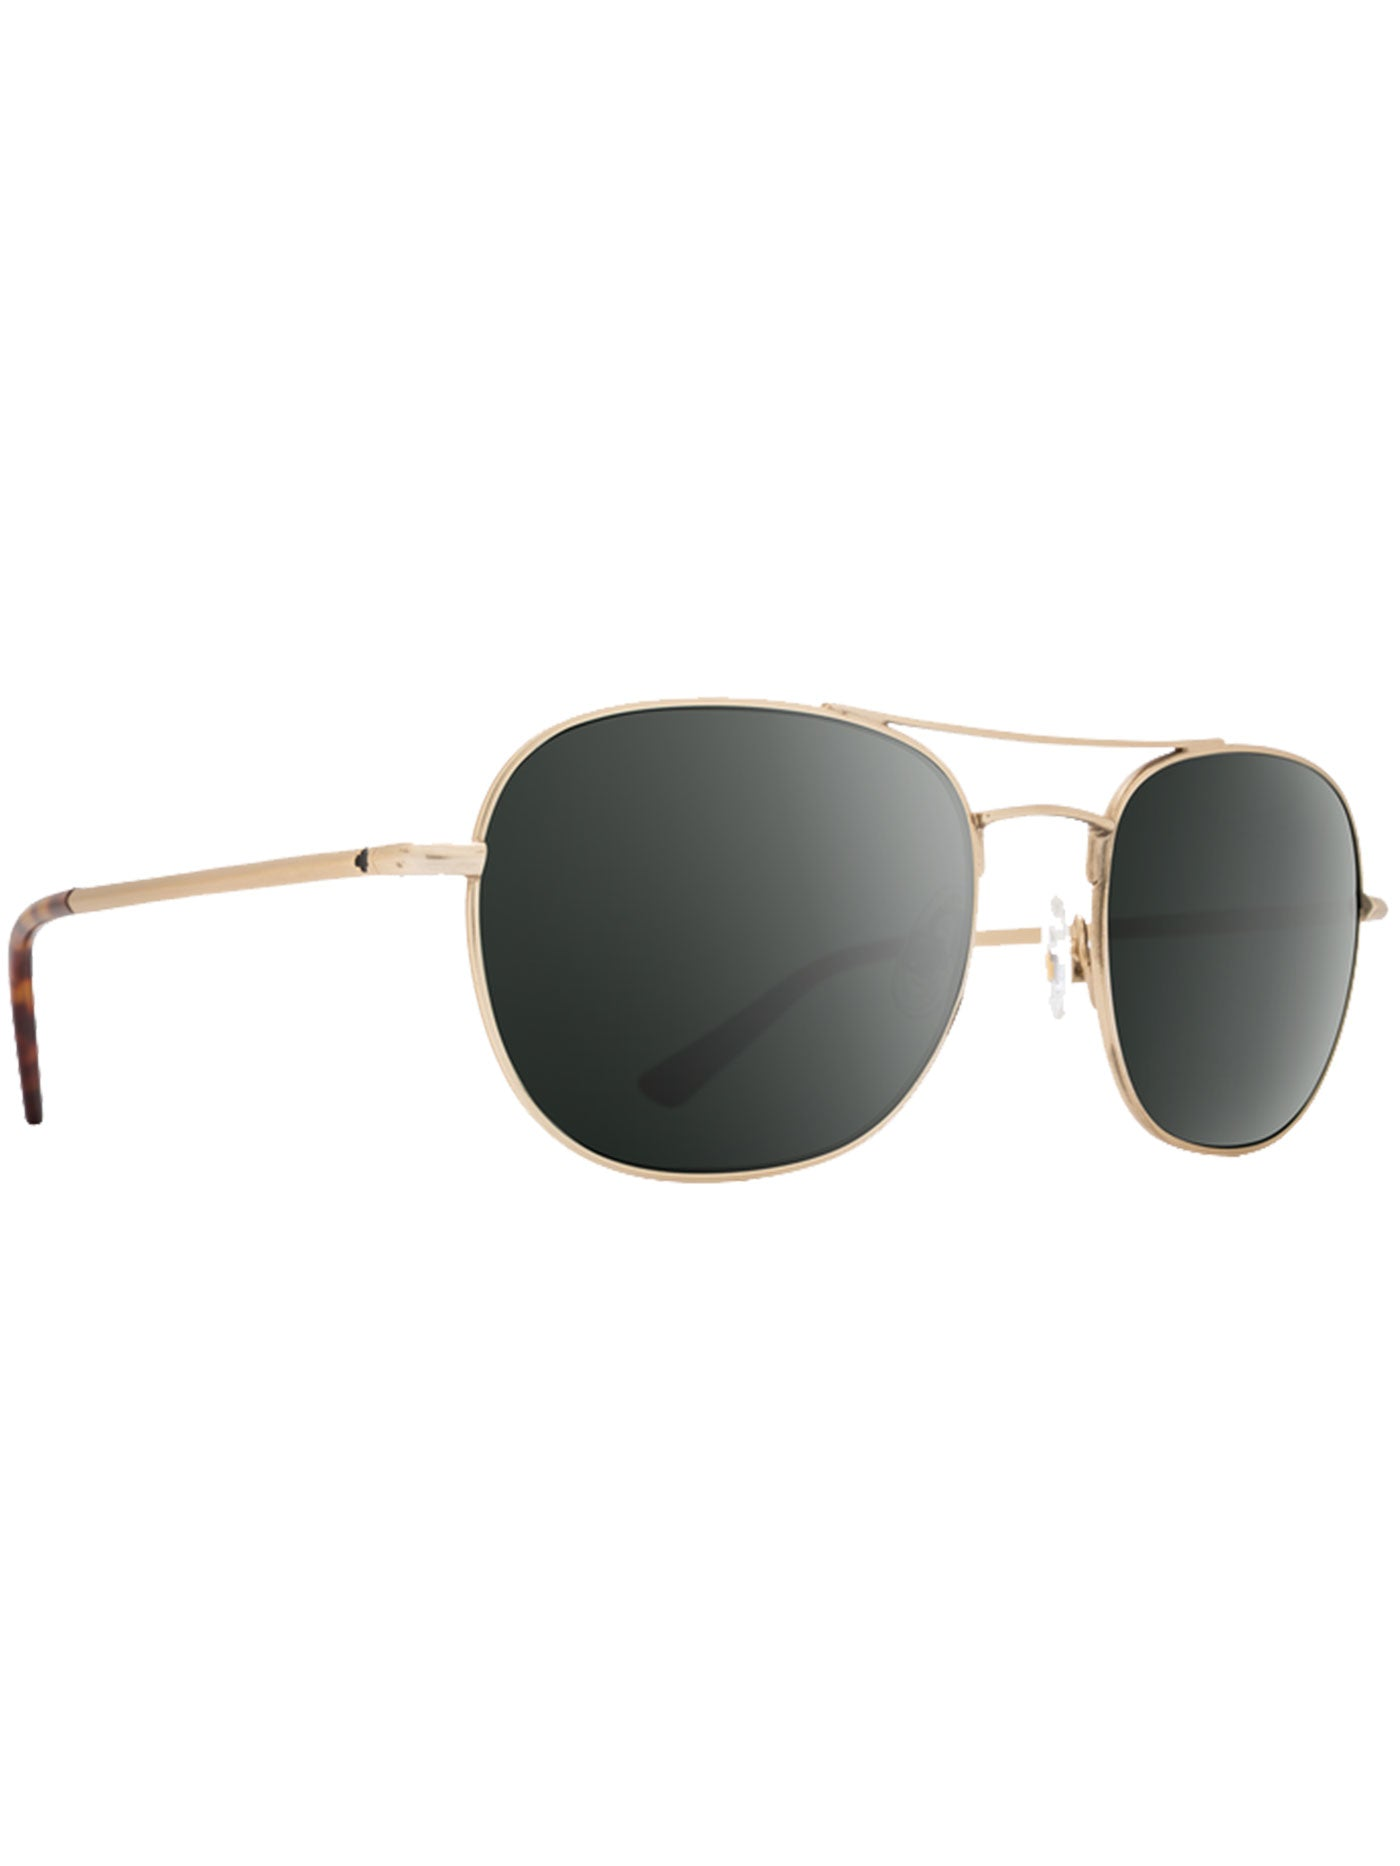 ANT GLD/HD GRY GRN/BLK SP